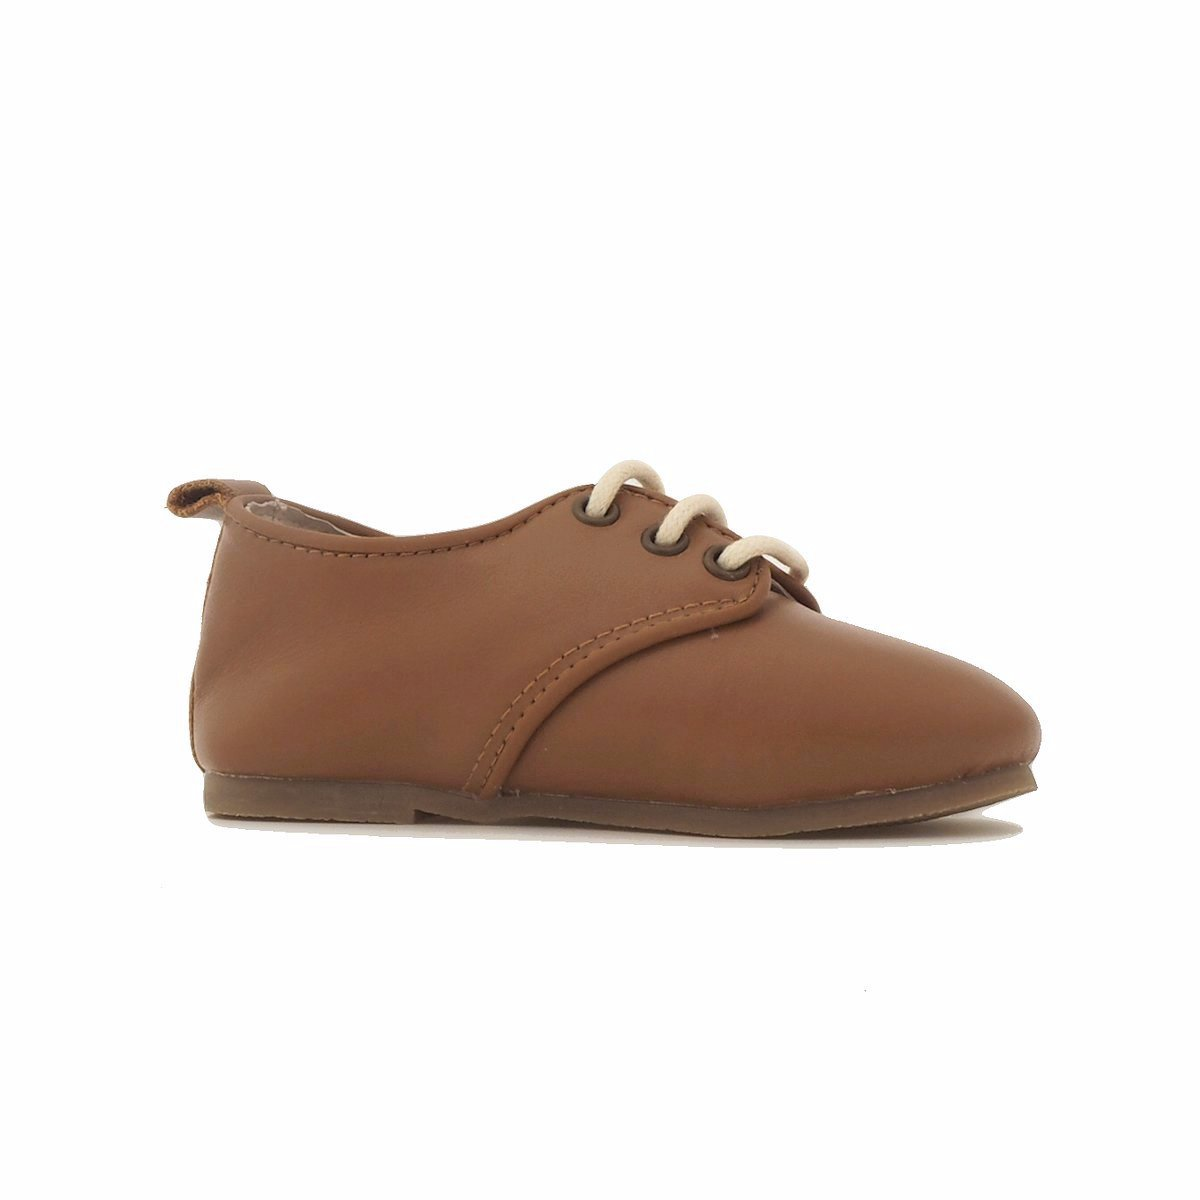 Children's Oxford Shoes in Natural